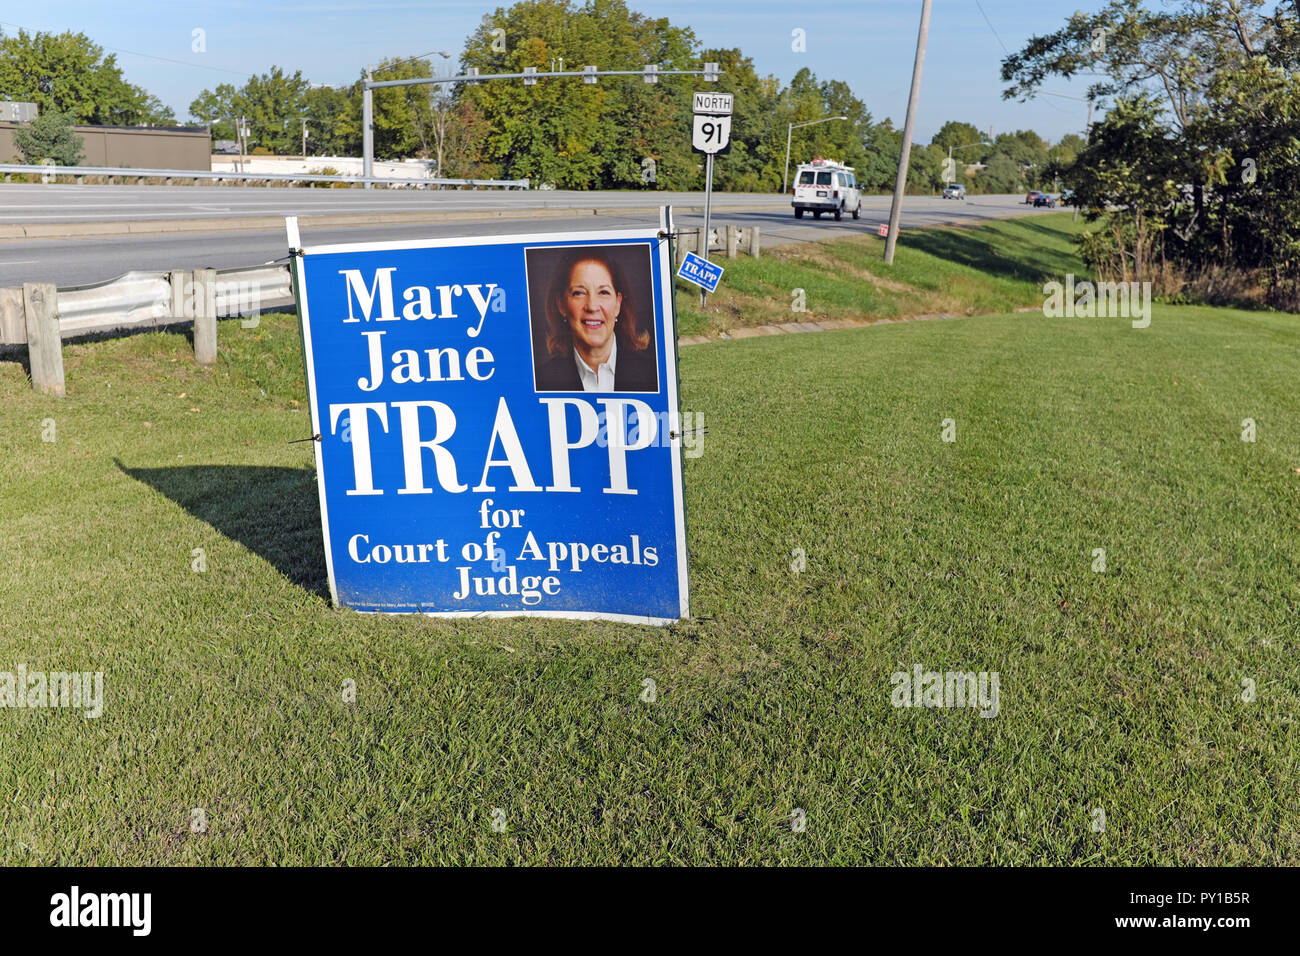 An election sign for Court of Appeals Judge in the Ohio 11th District is a common site in Lake County Ohio during the midterm 2018 elections. - Stock Image